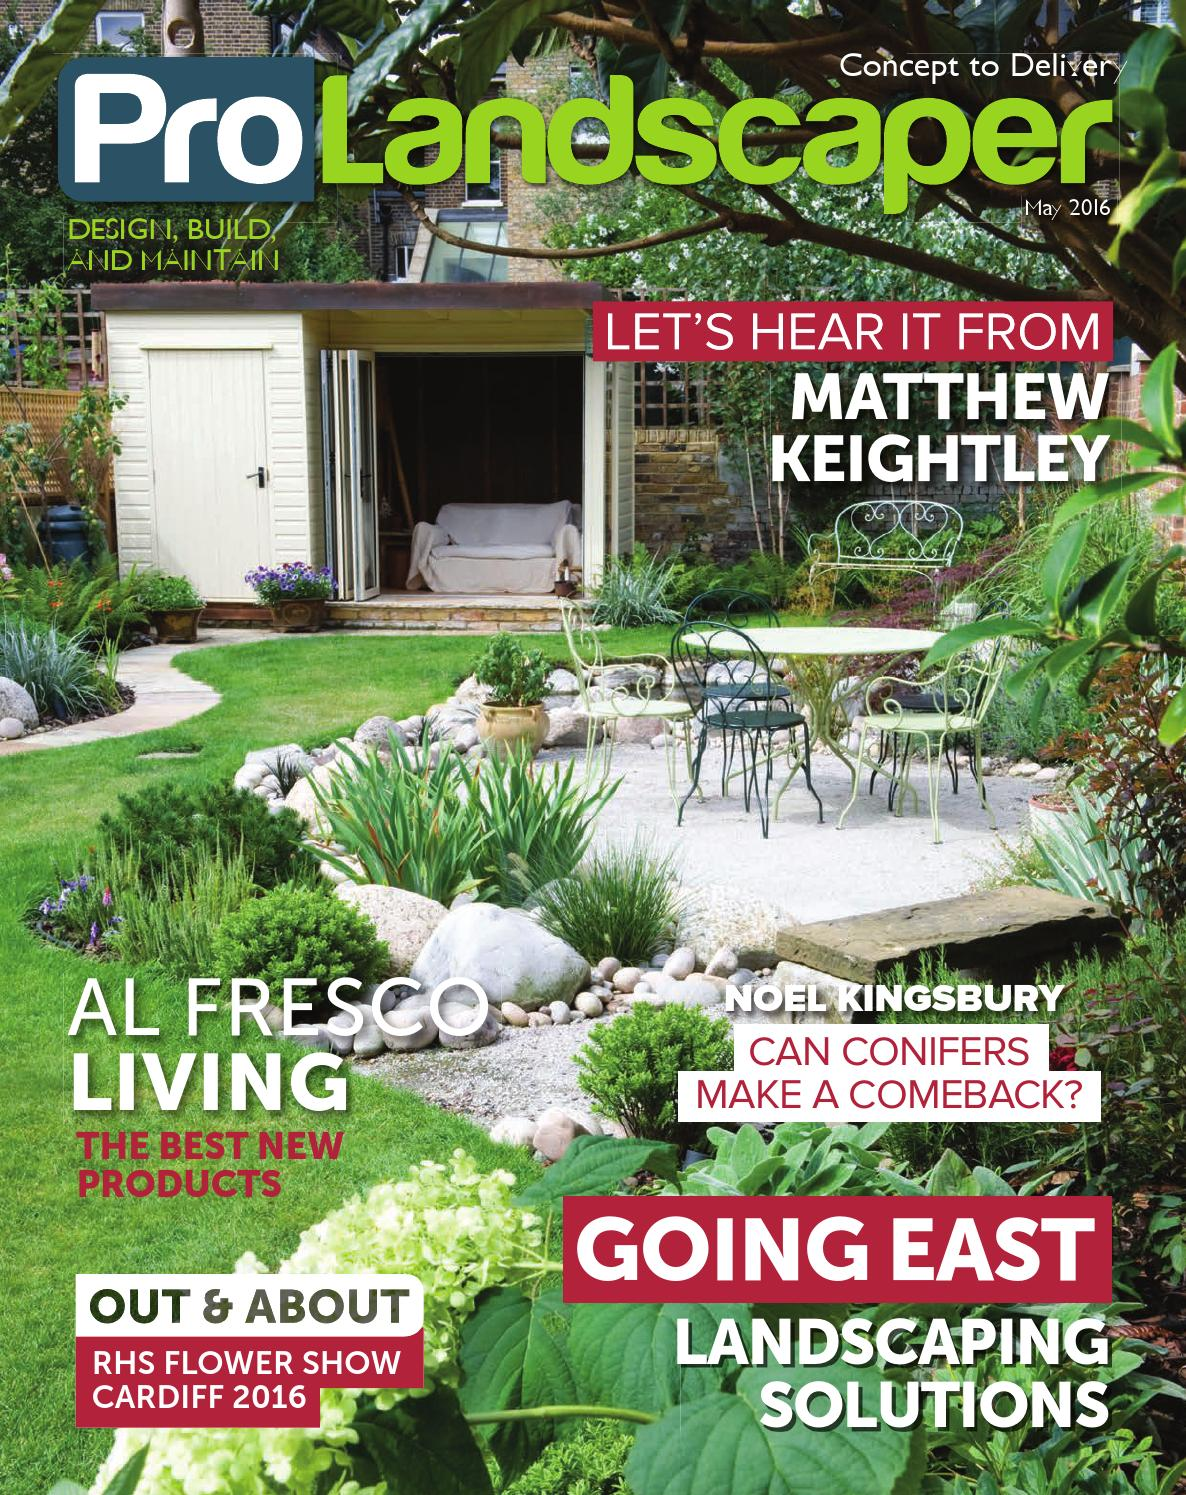 Pro Landscaper May 2016 By Eljays44 Issuu